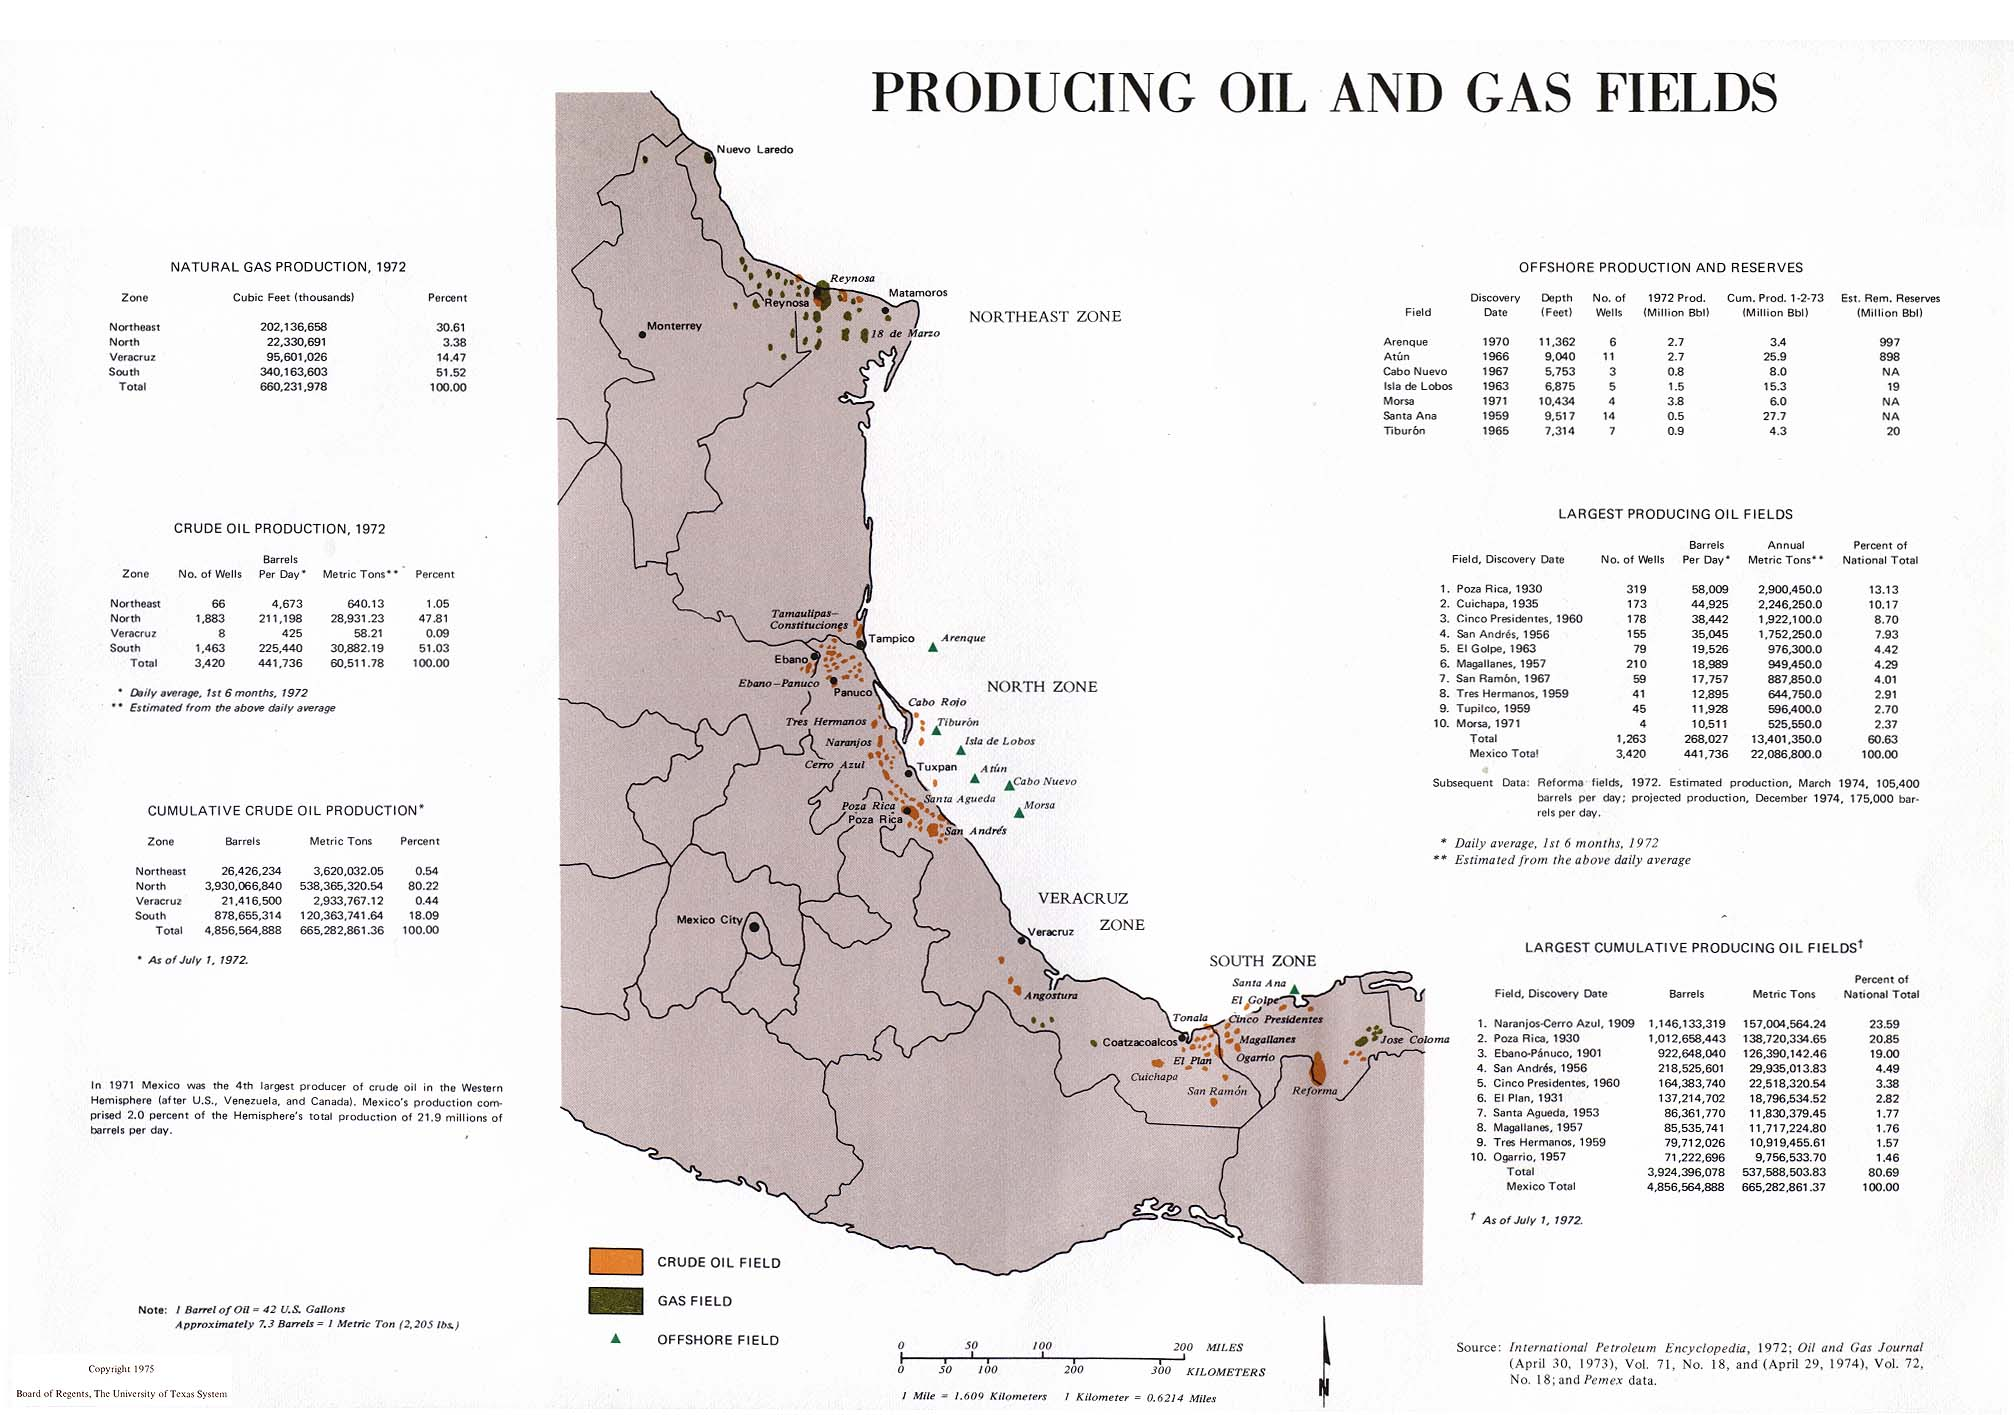 Producing Oil and Gas Fields, Mexico 1975